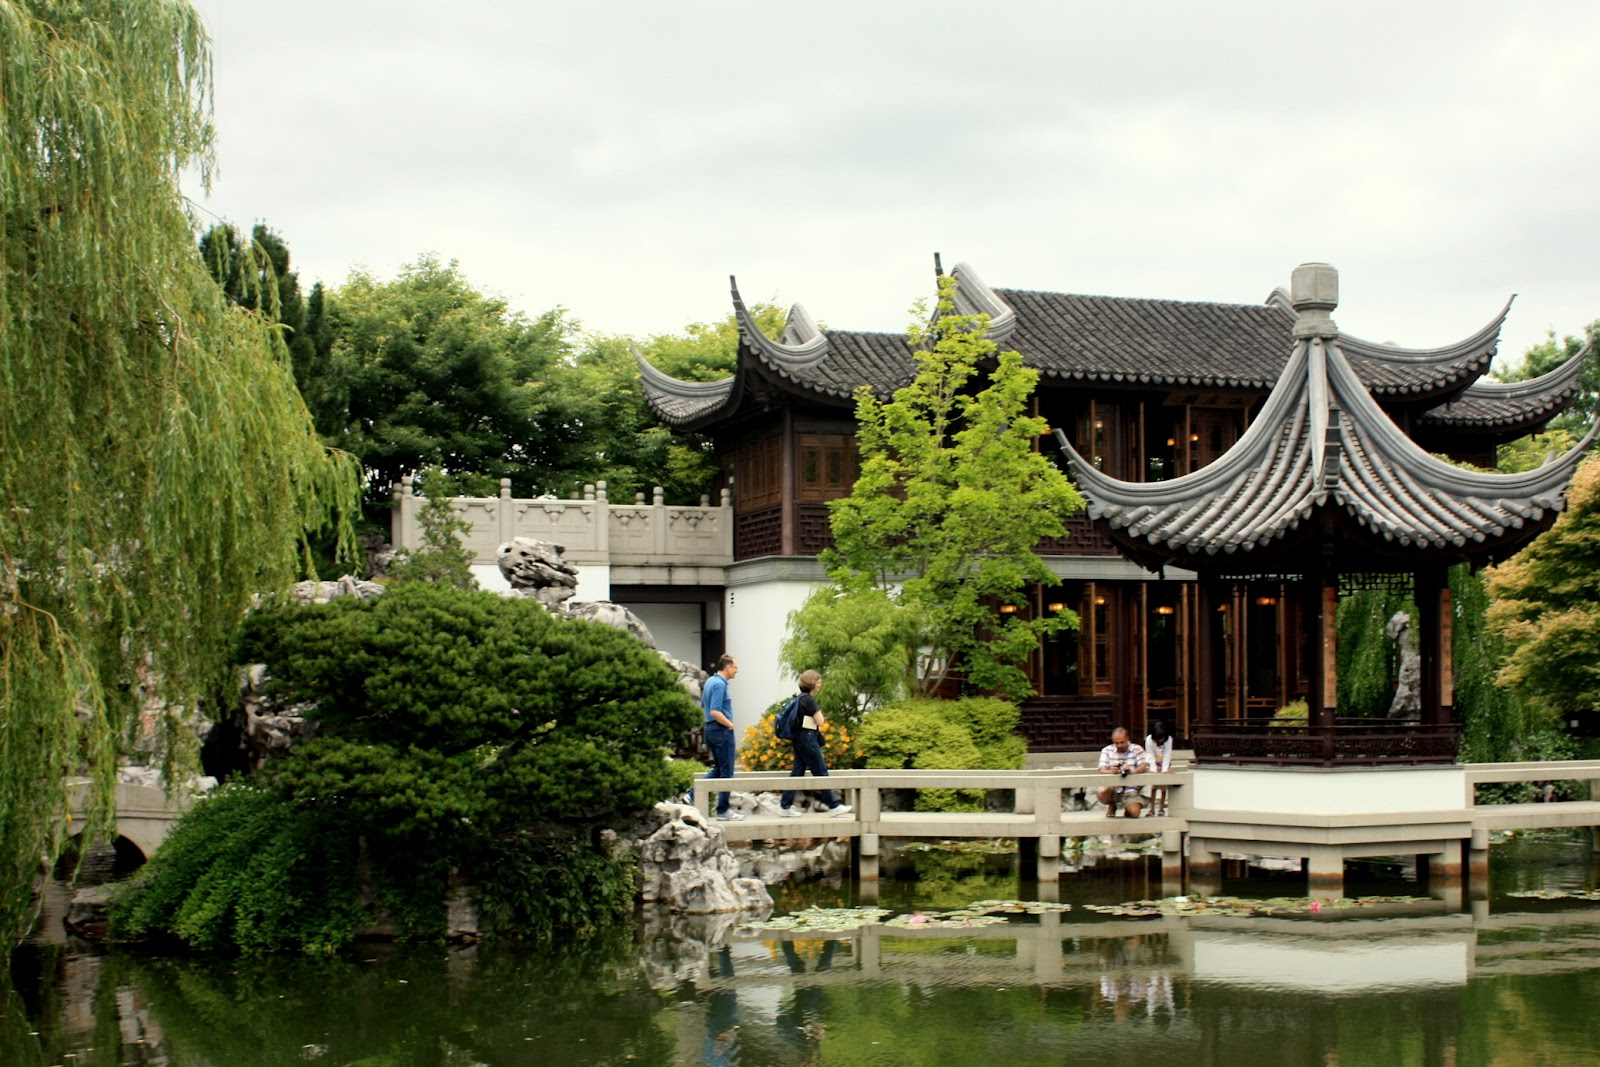 Rainy day thoughts: Lan Su Chinese Garden